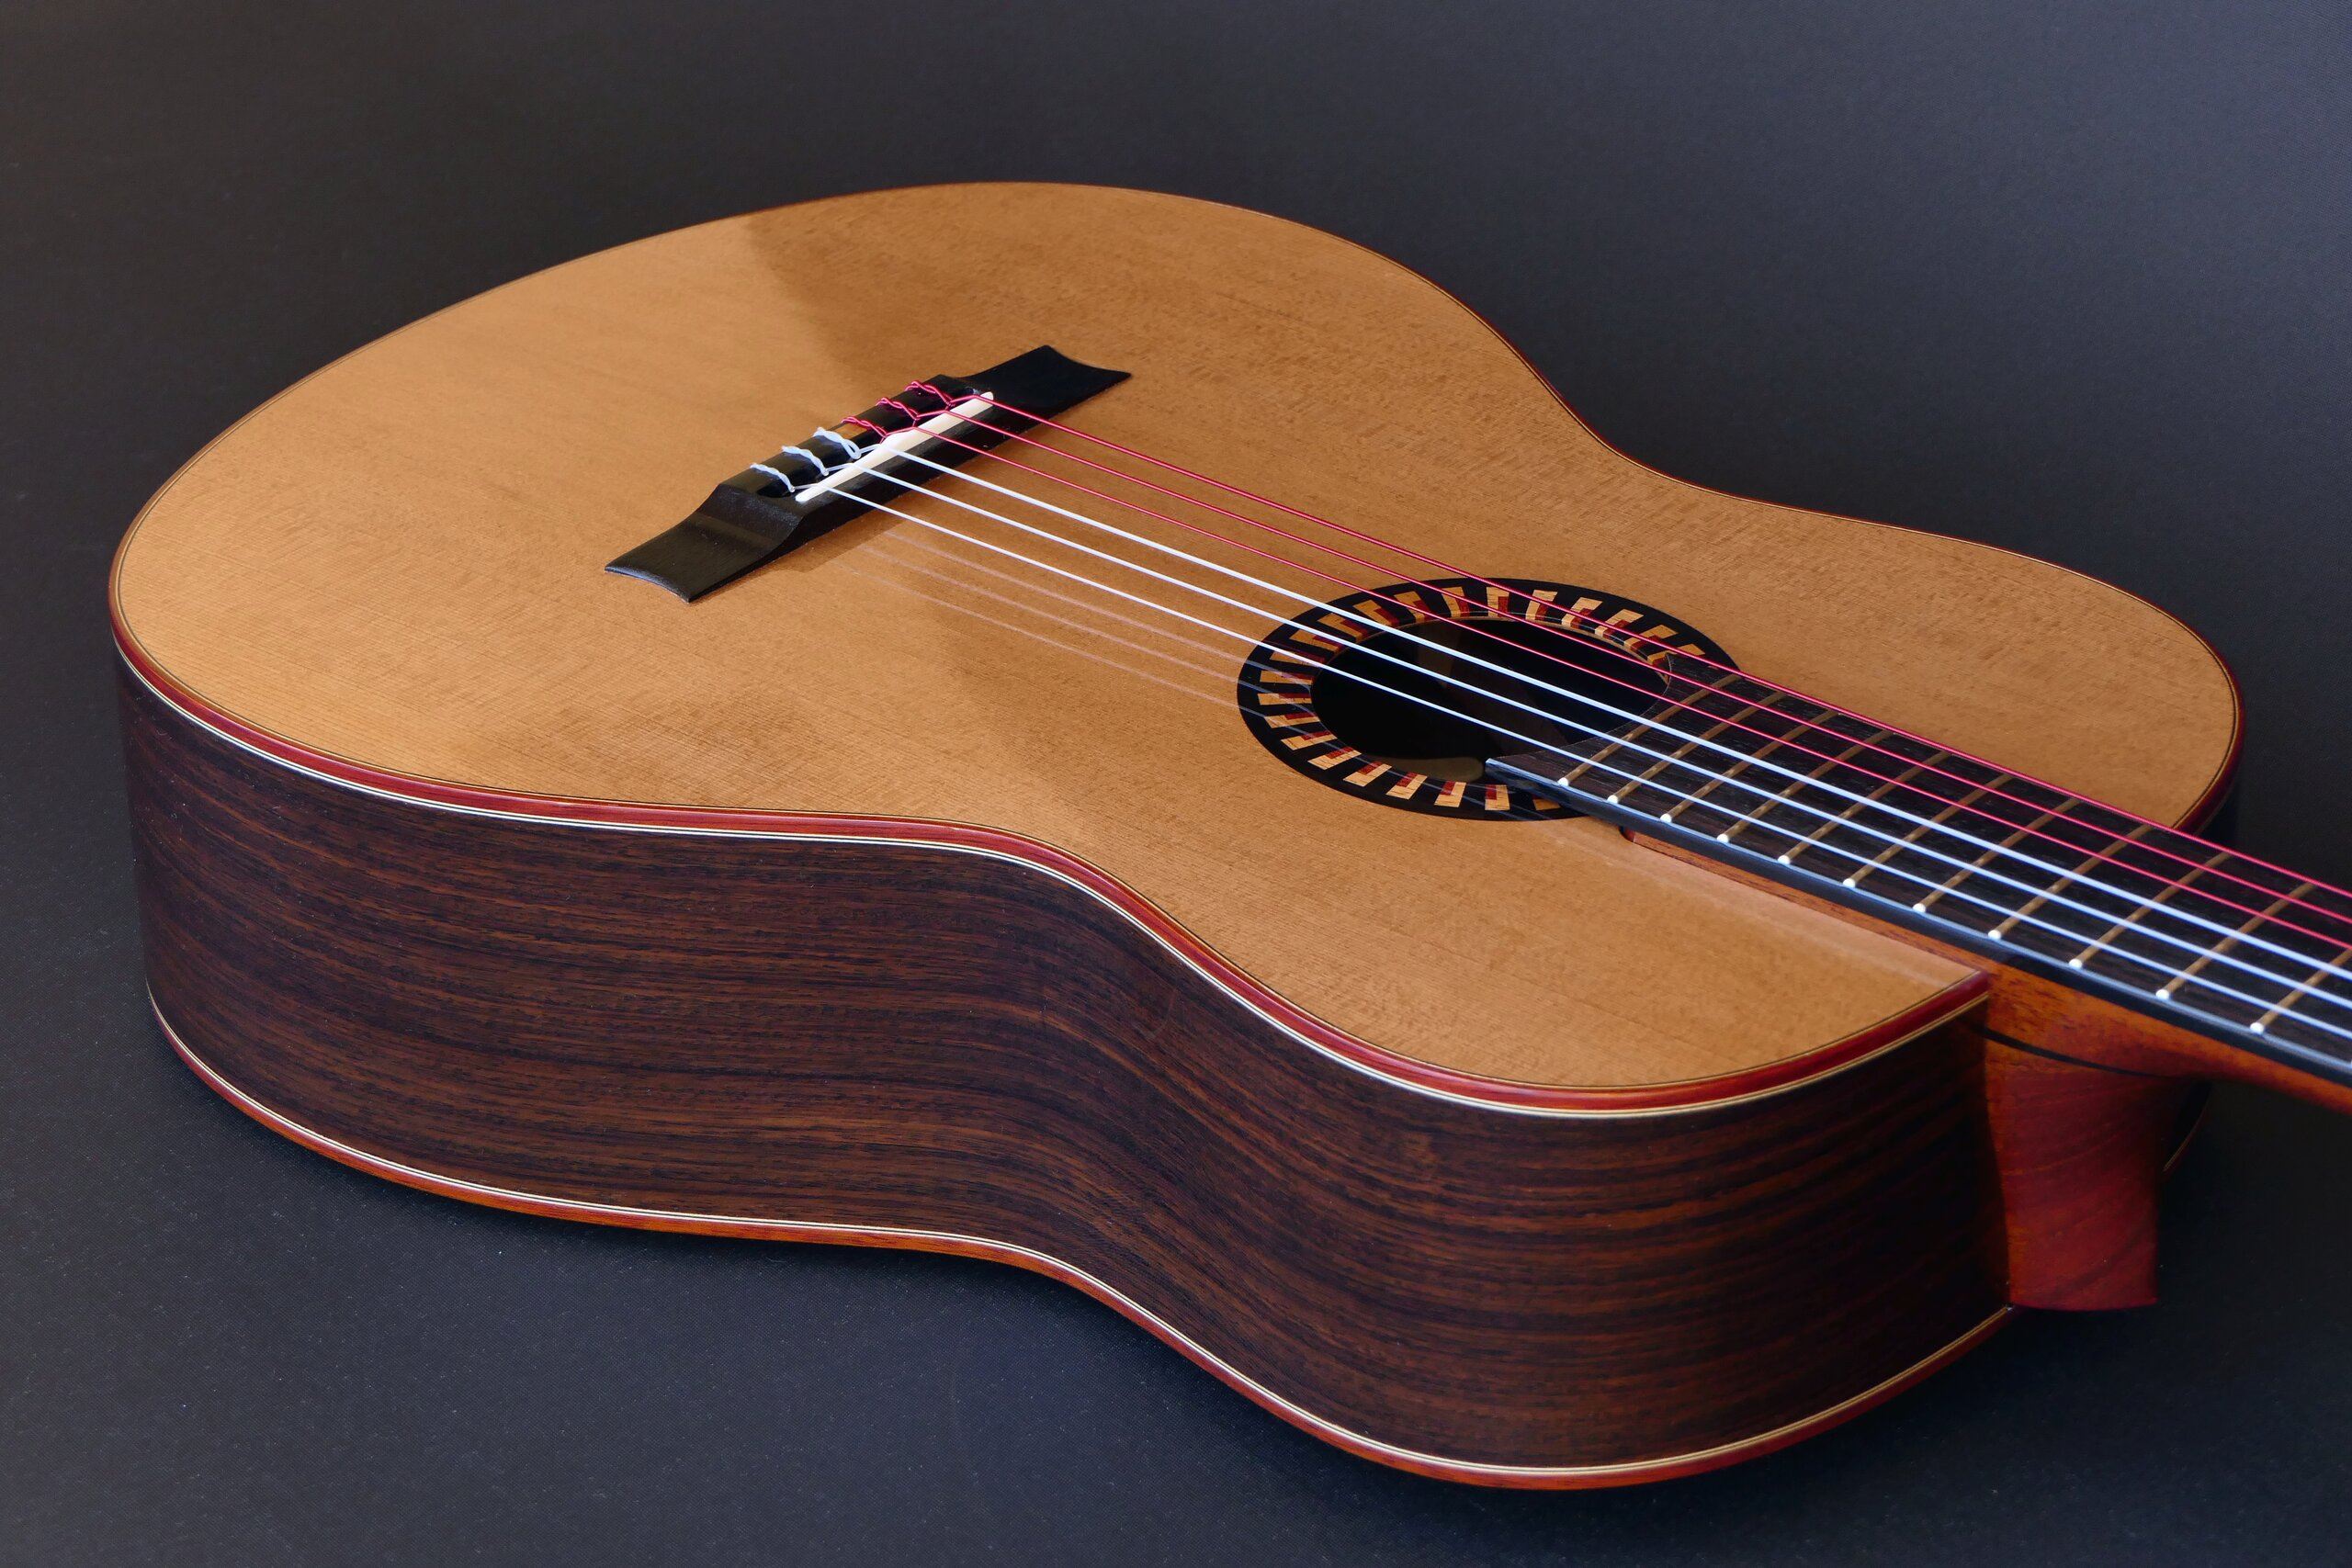 Classical guitar with cedar top, rosewood sides, bloodwood binding